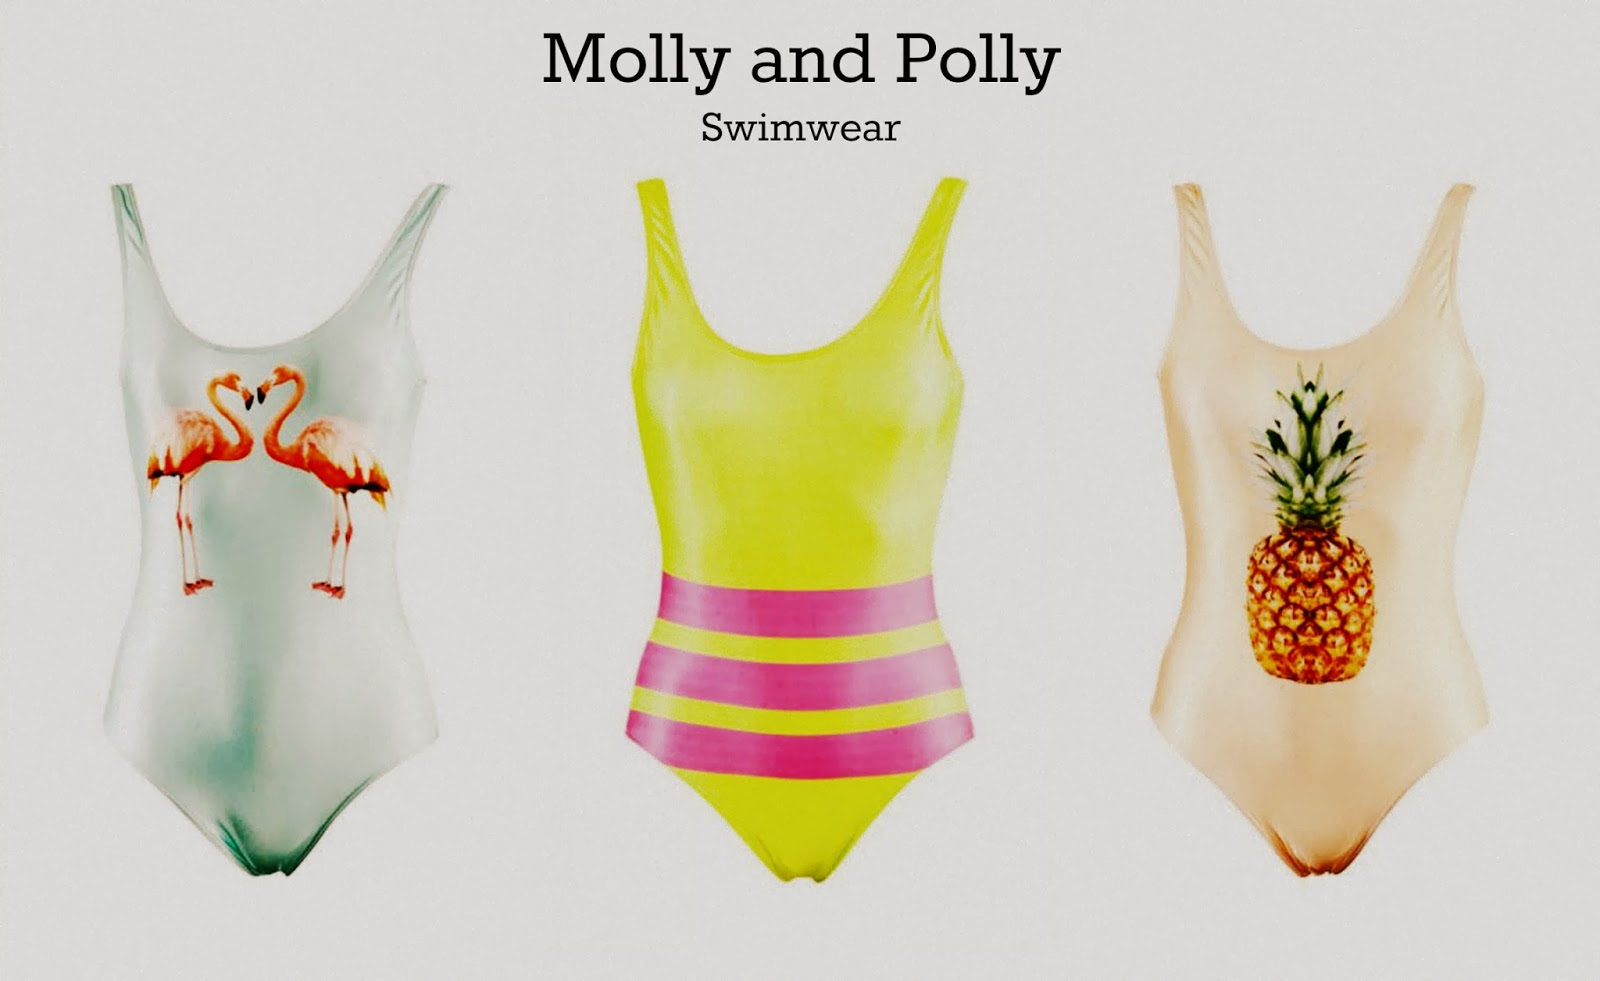 Chamomile and Peppermint Blog - Molly and Polly Swimwear 2014